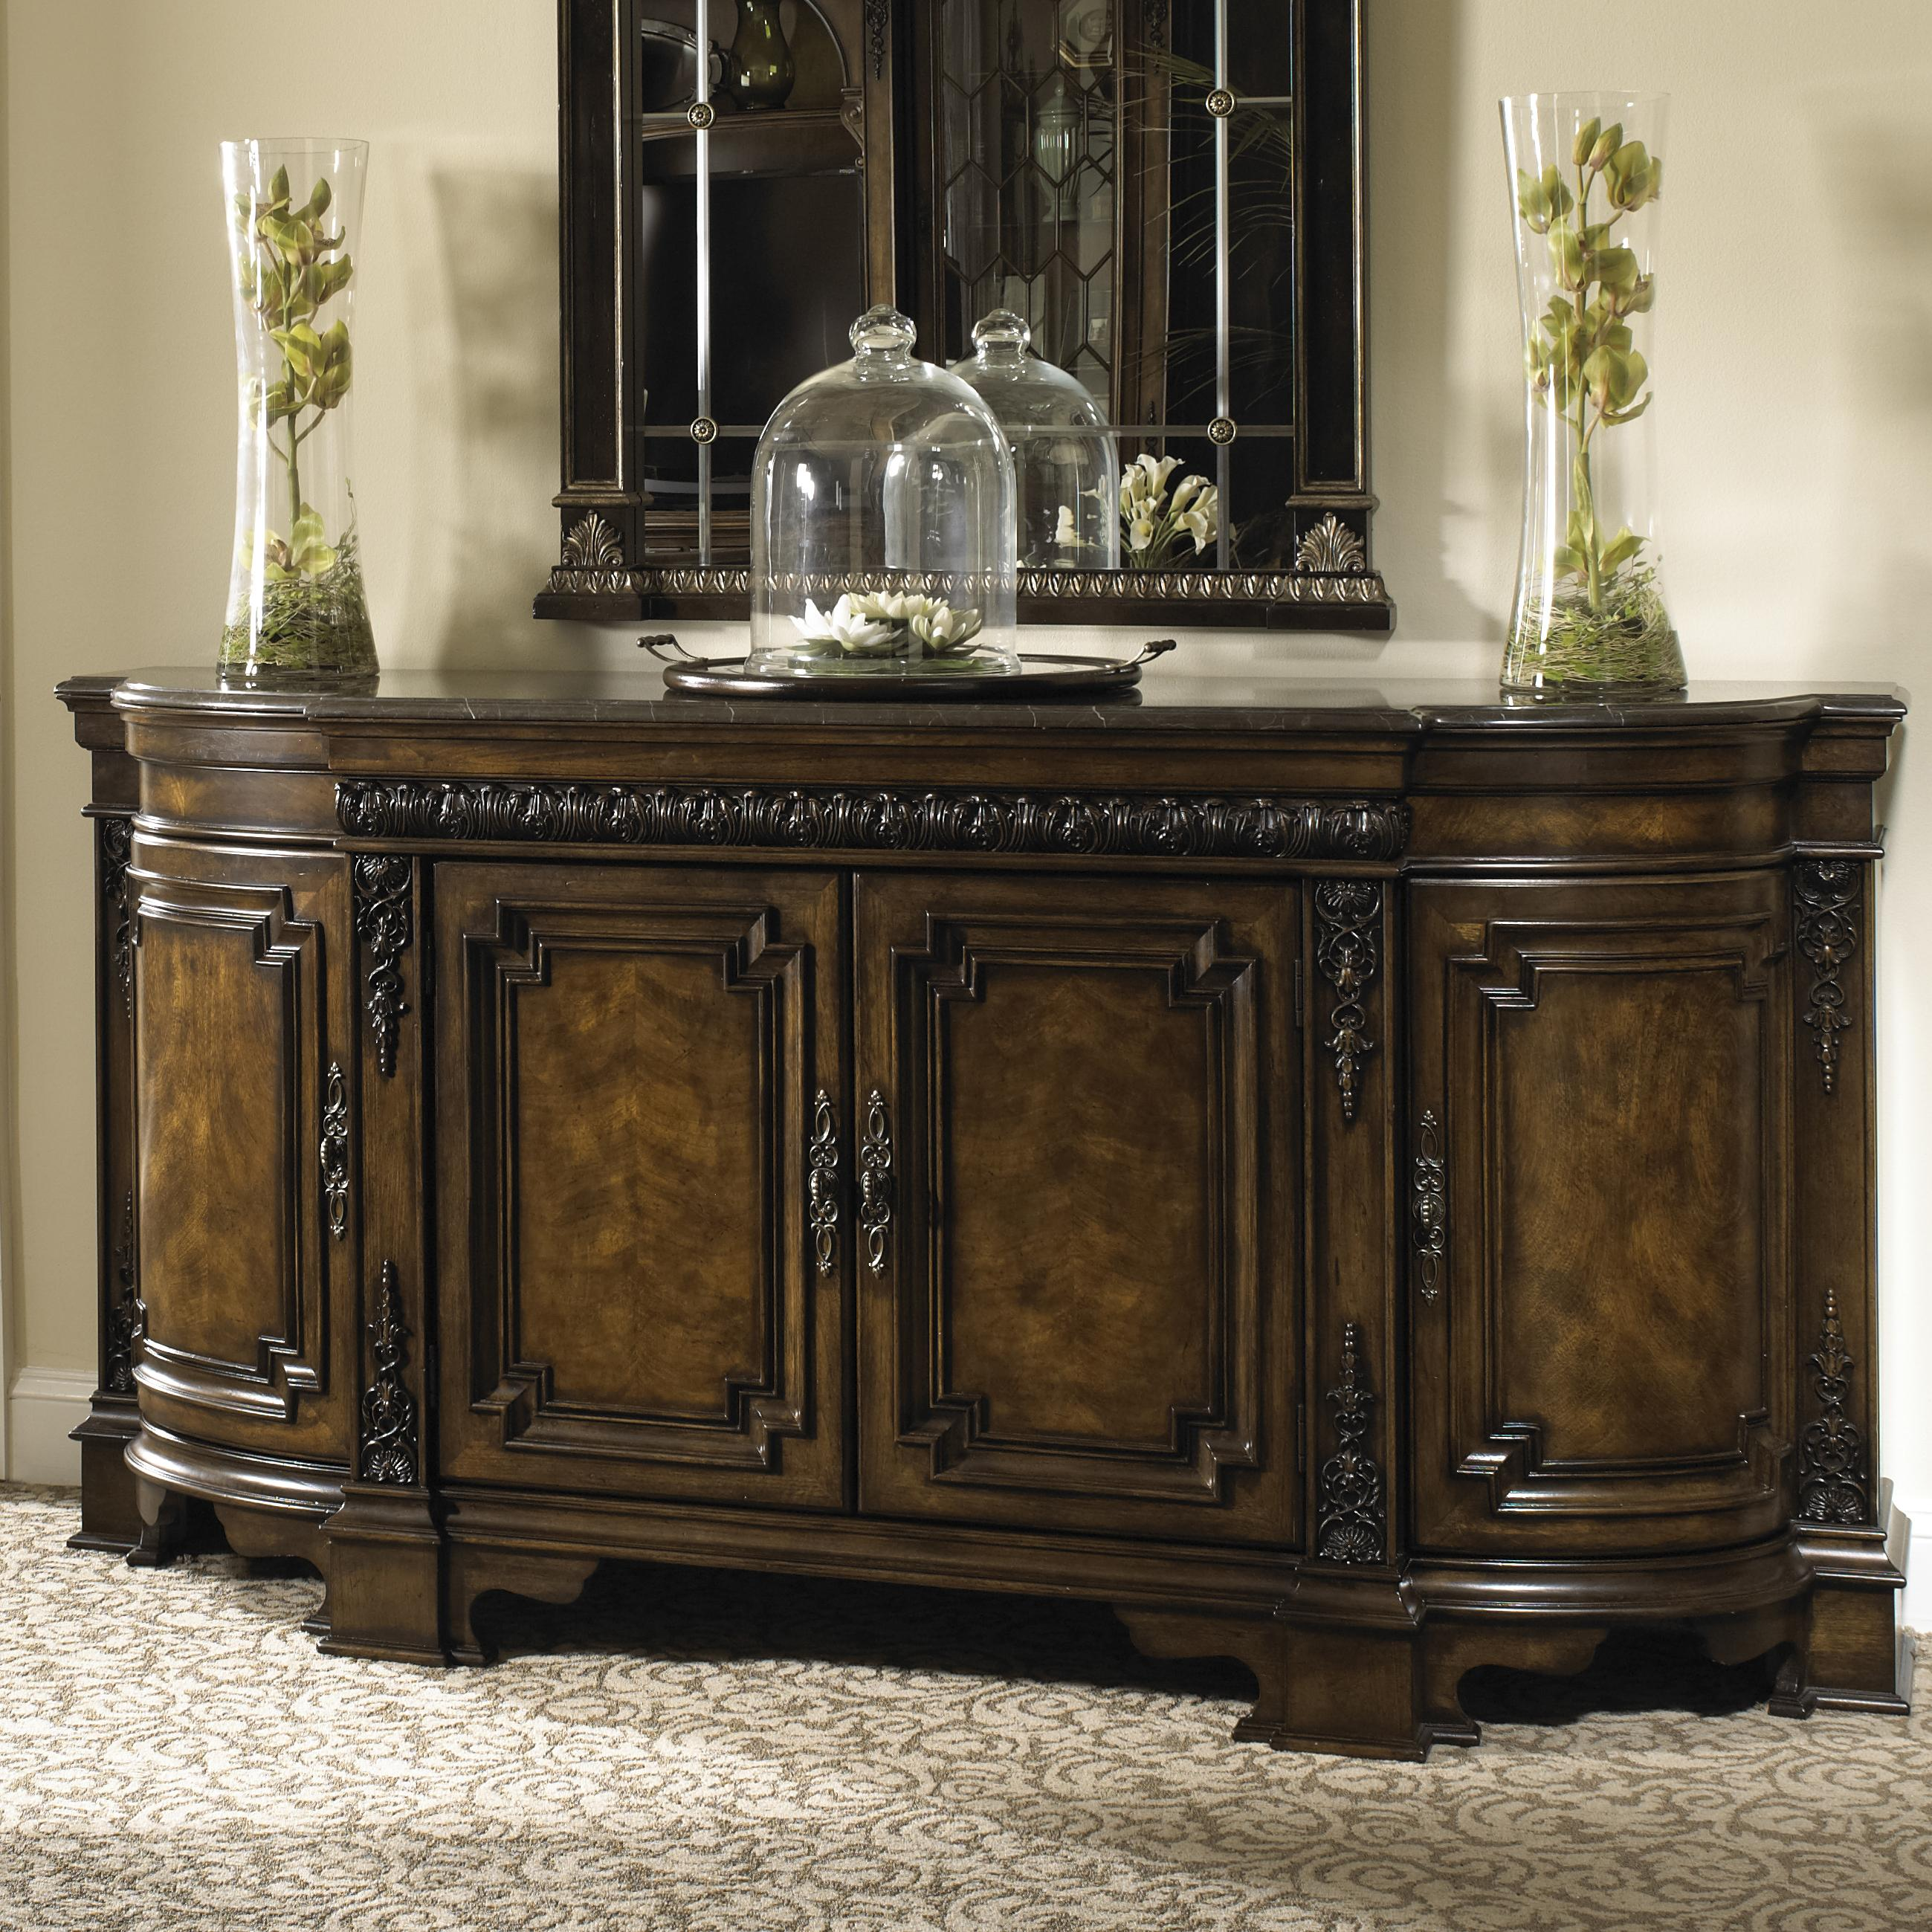 Marble Top Buffet ~ Formal dining credenza with marble top and silverware